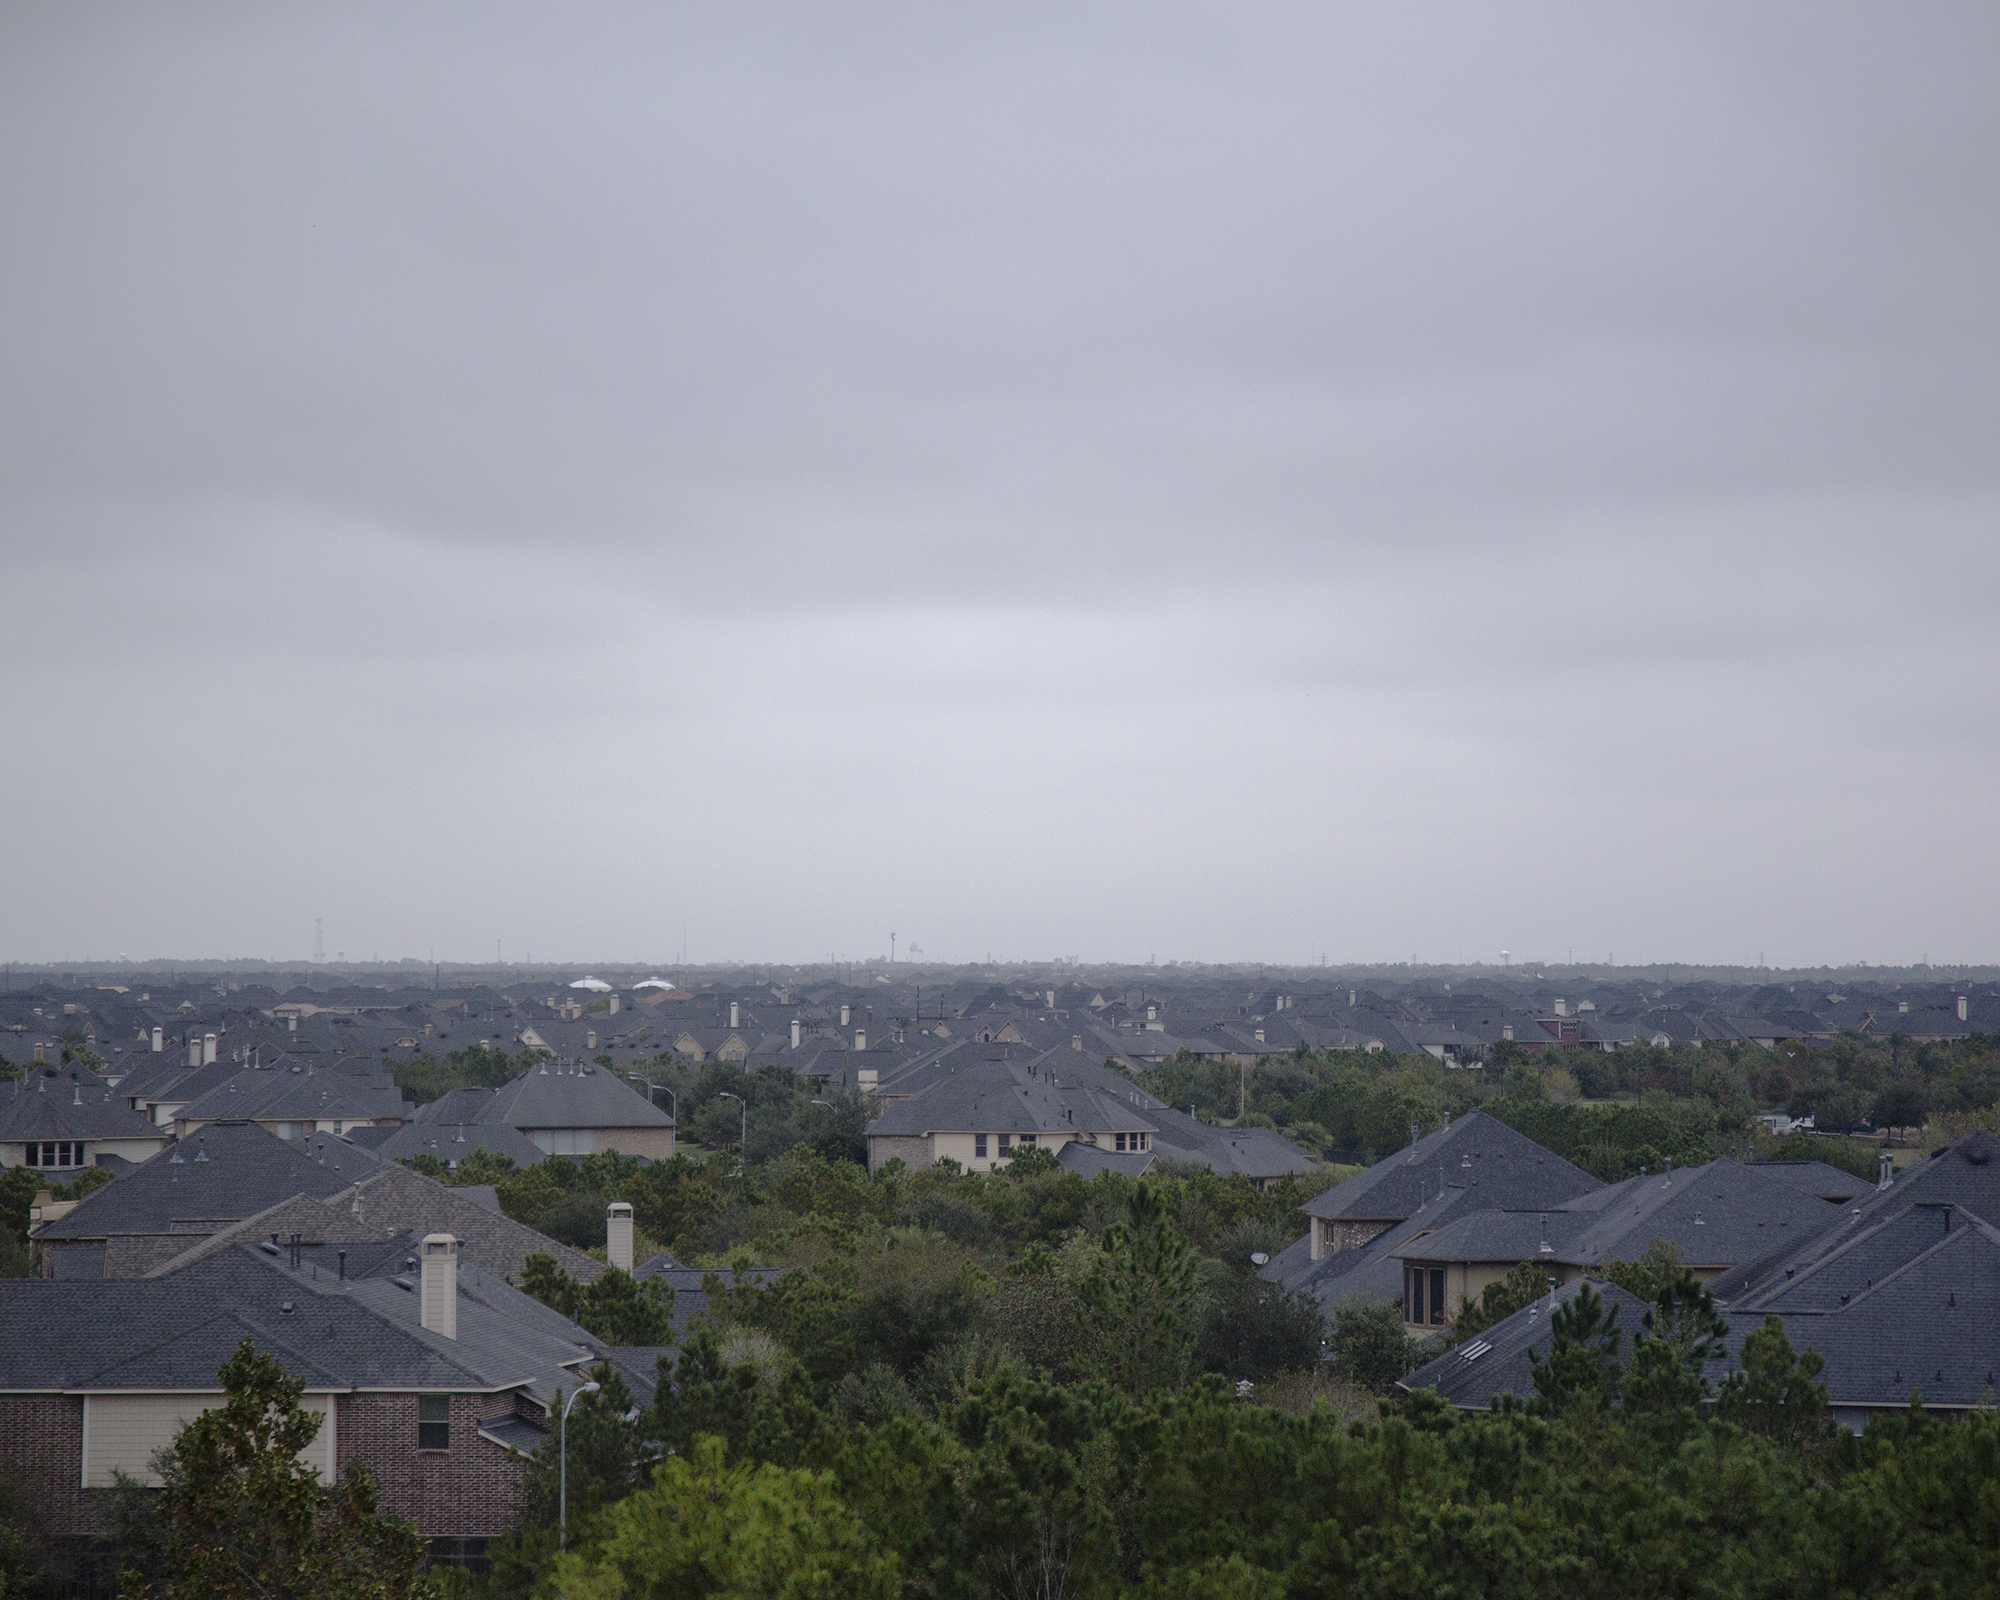 Master-plan housing communities have replaced vast prairies, where crops sprouted and cattle once grazed, in Fulshear, Texas. With a population of just 1,134 individuals in 2010, the town west of Houston has grown over 2,000 percent in under a decade.